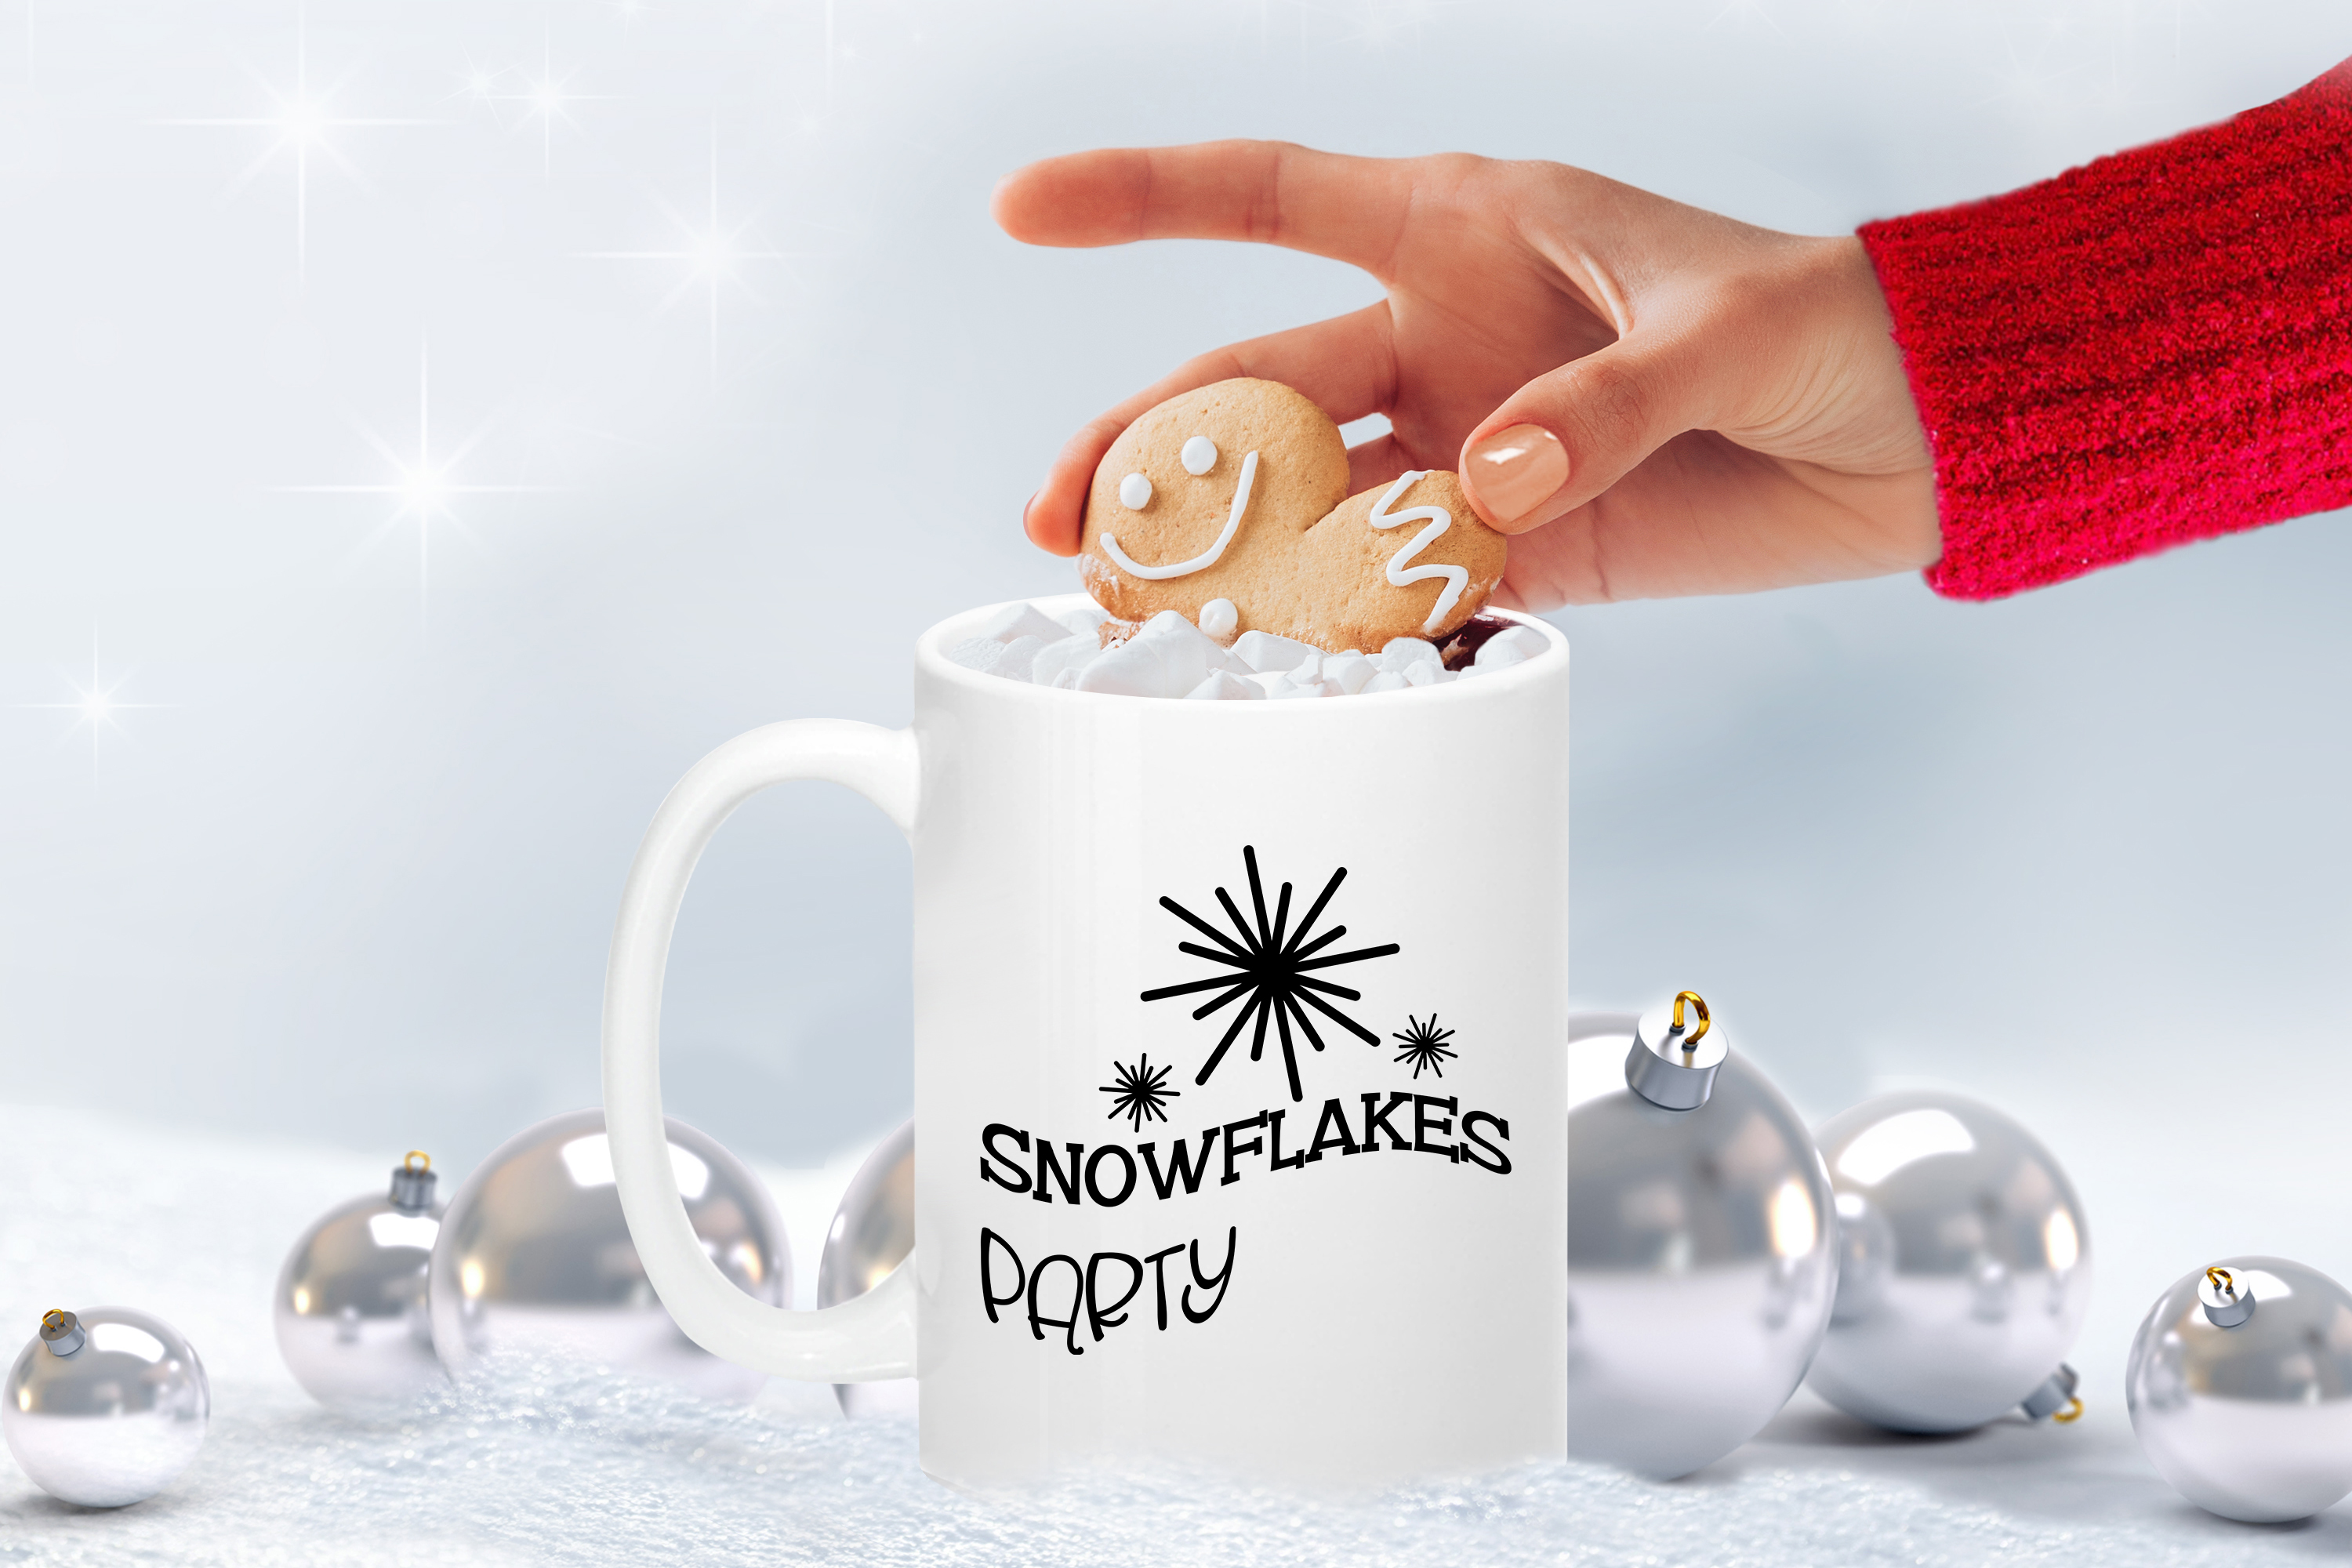 Snowflakes Party example image 2